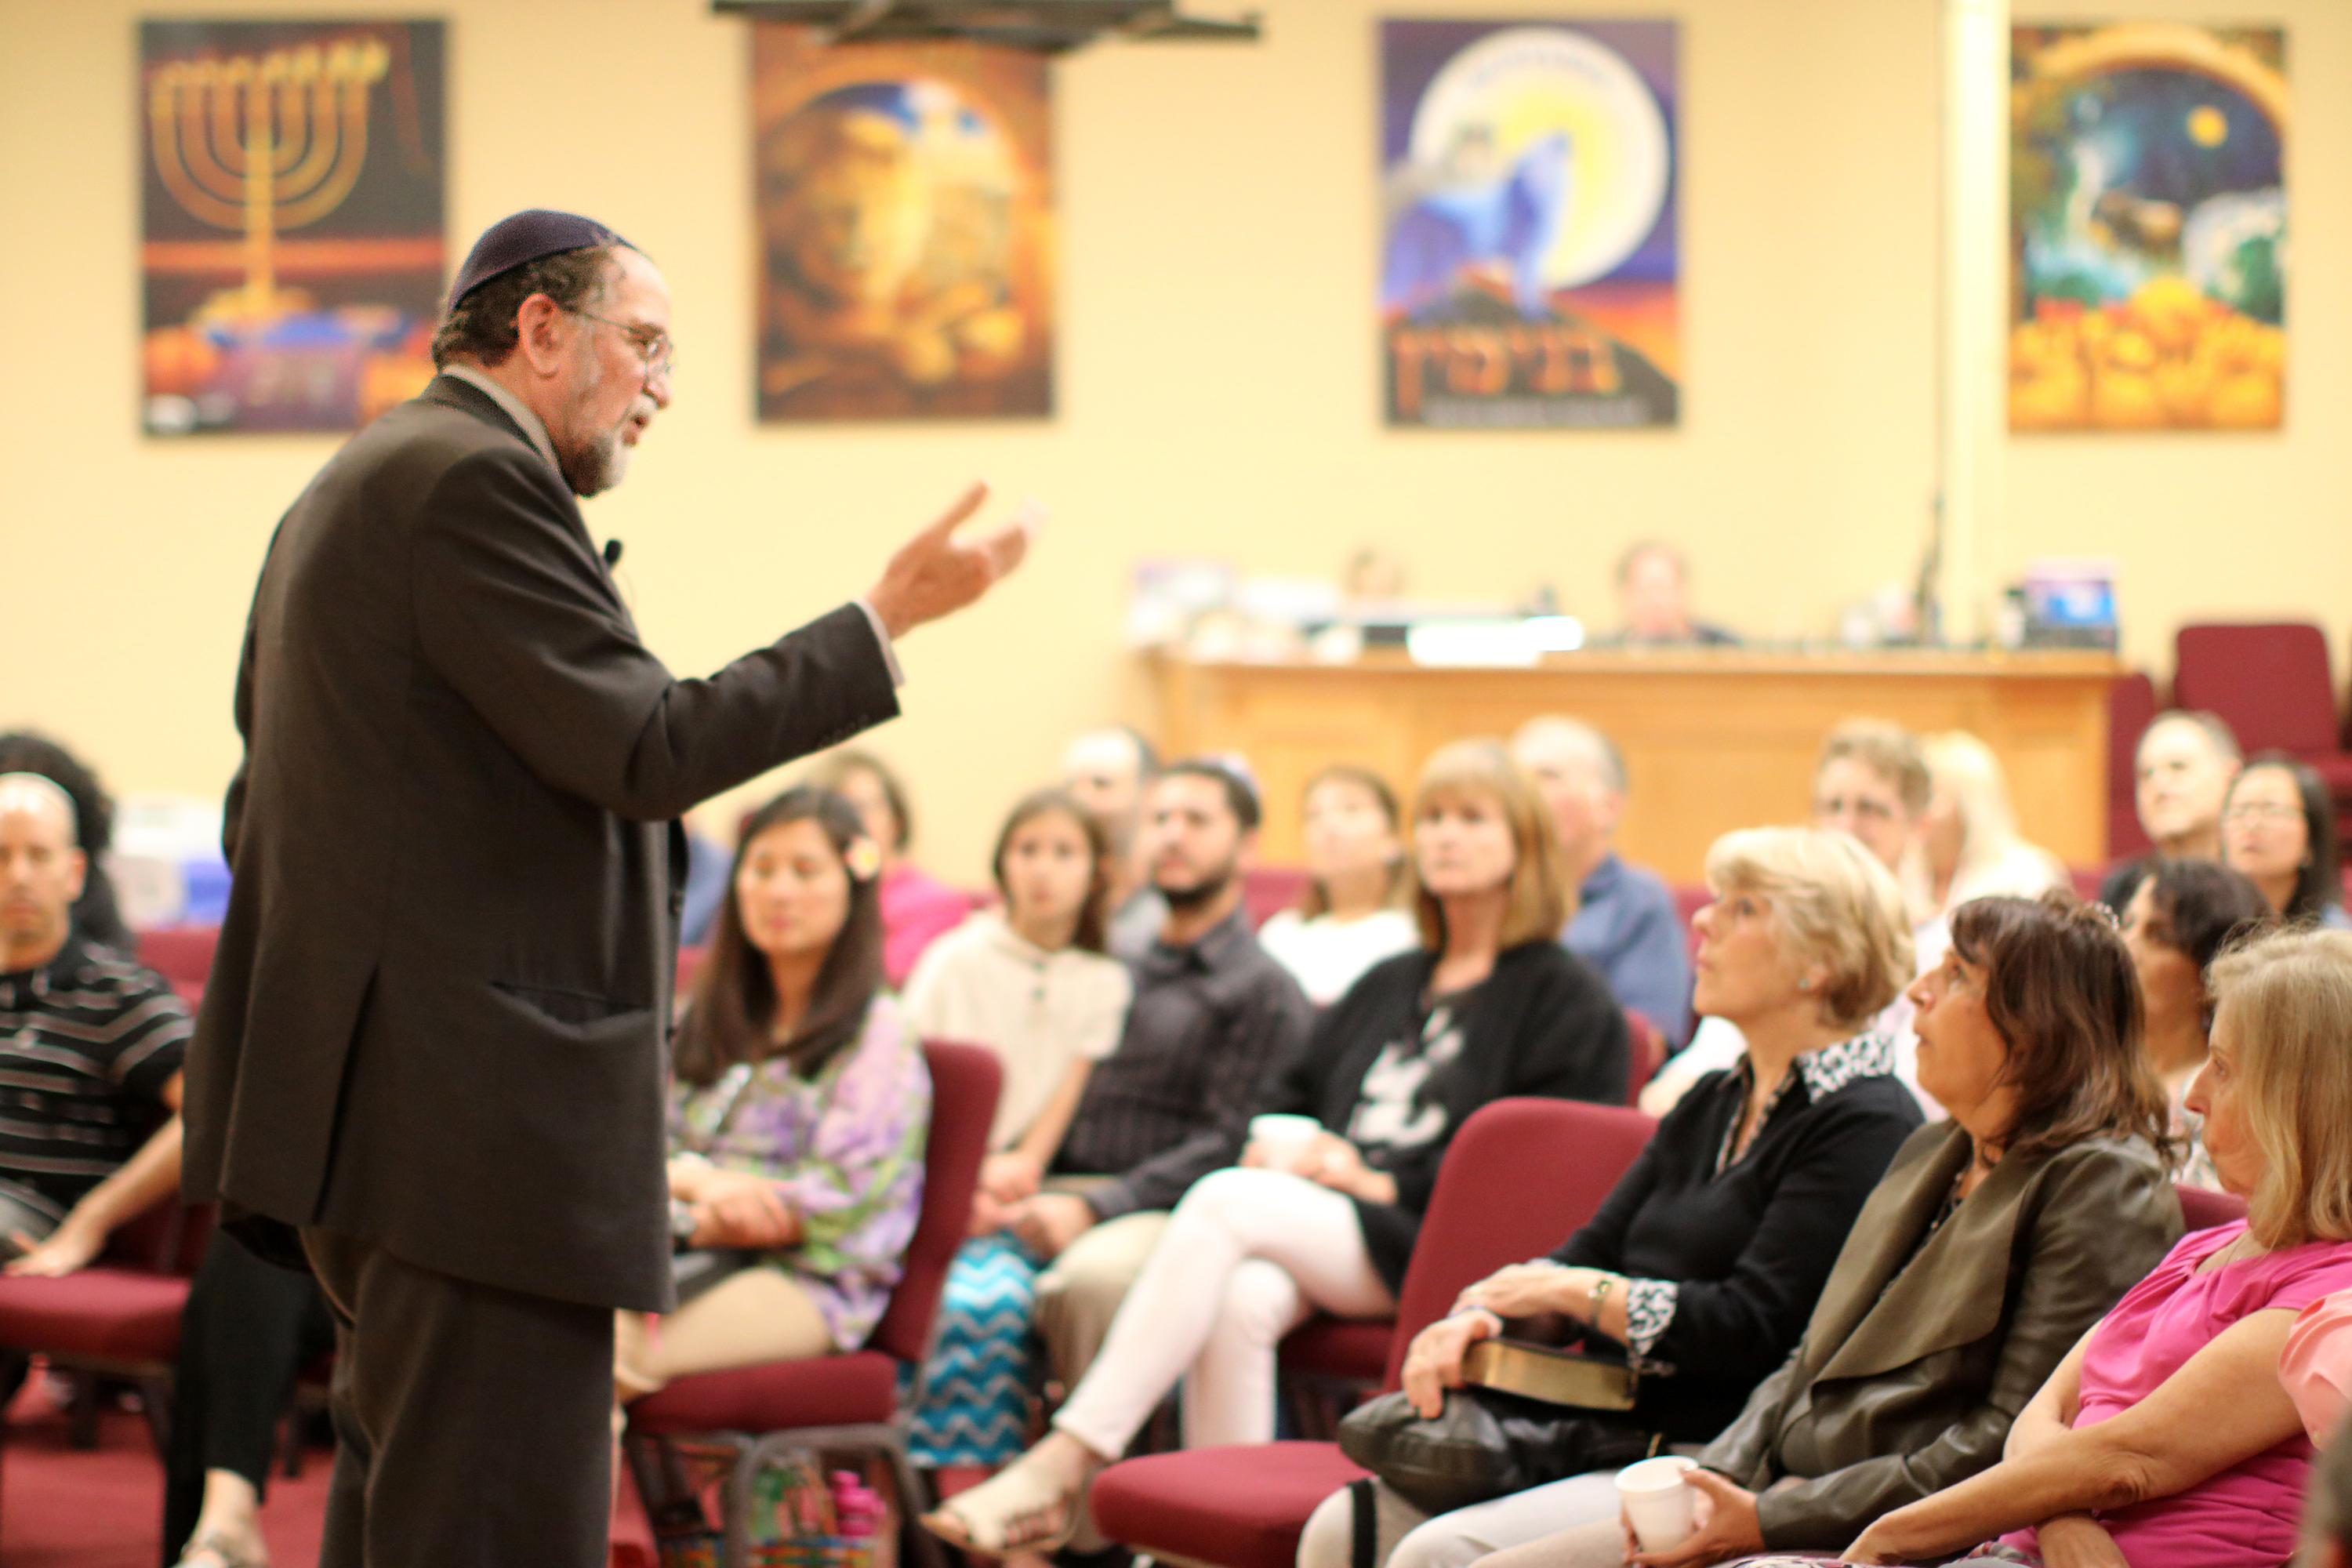 Rabbi Stuart Dauermann teaching